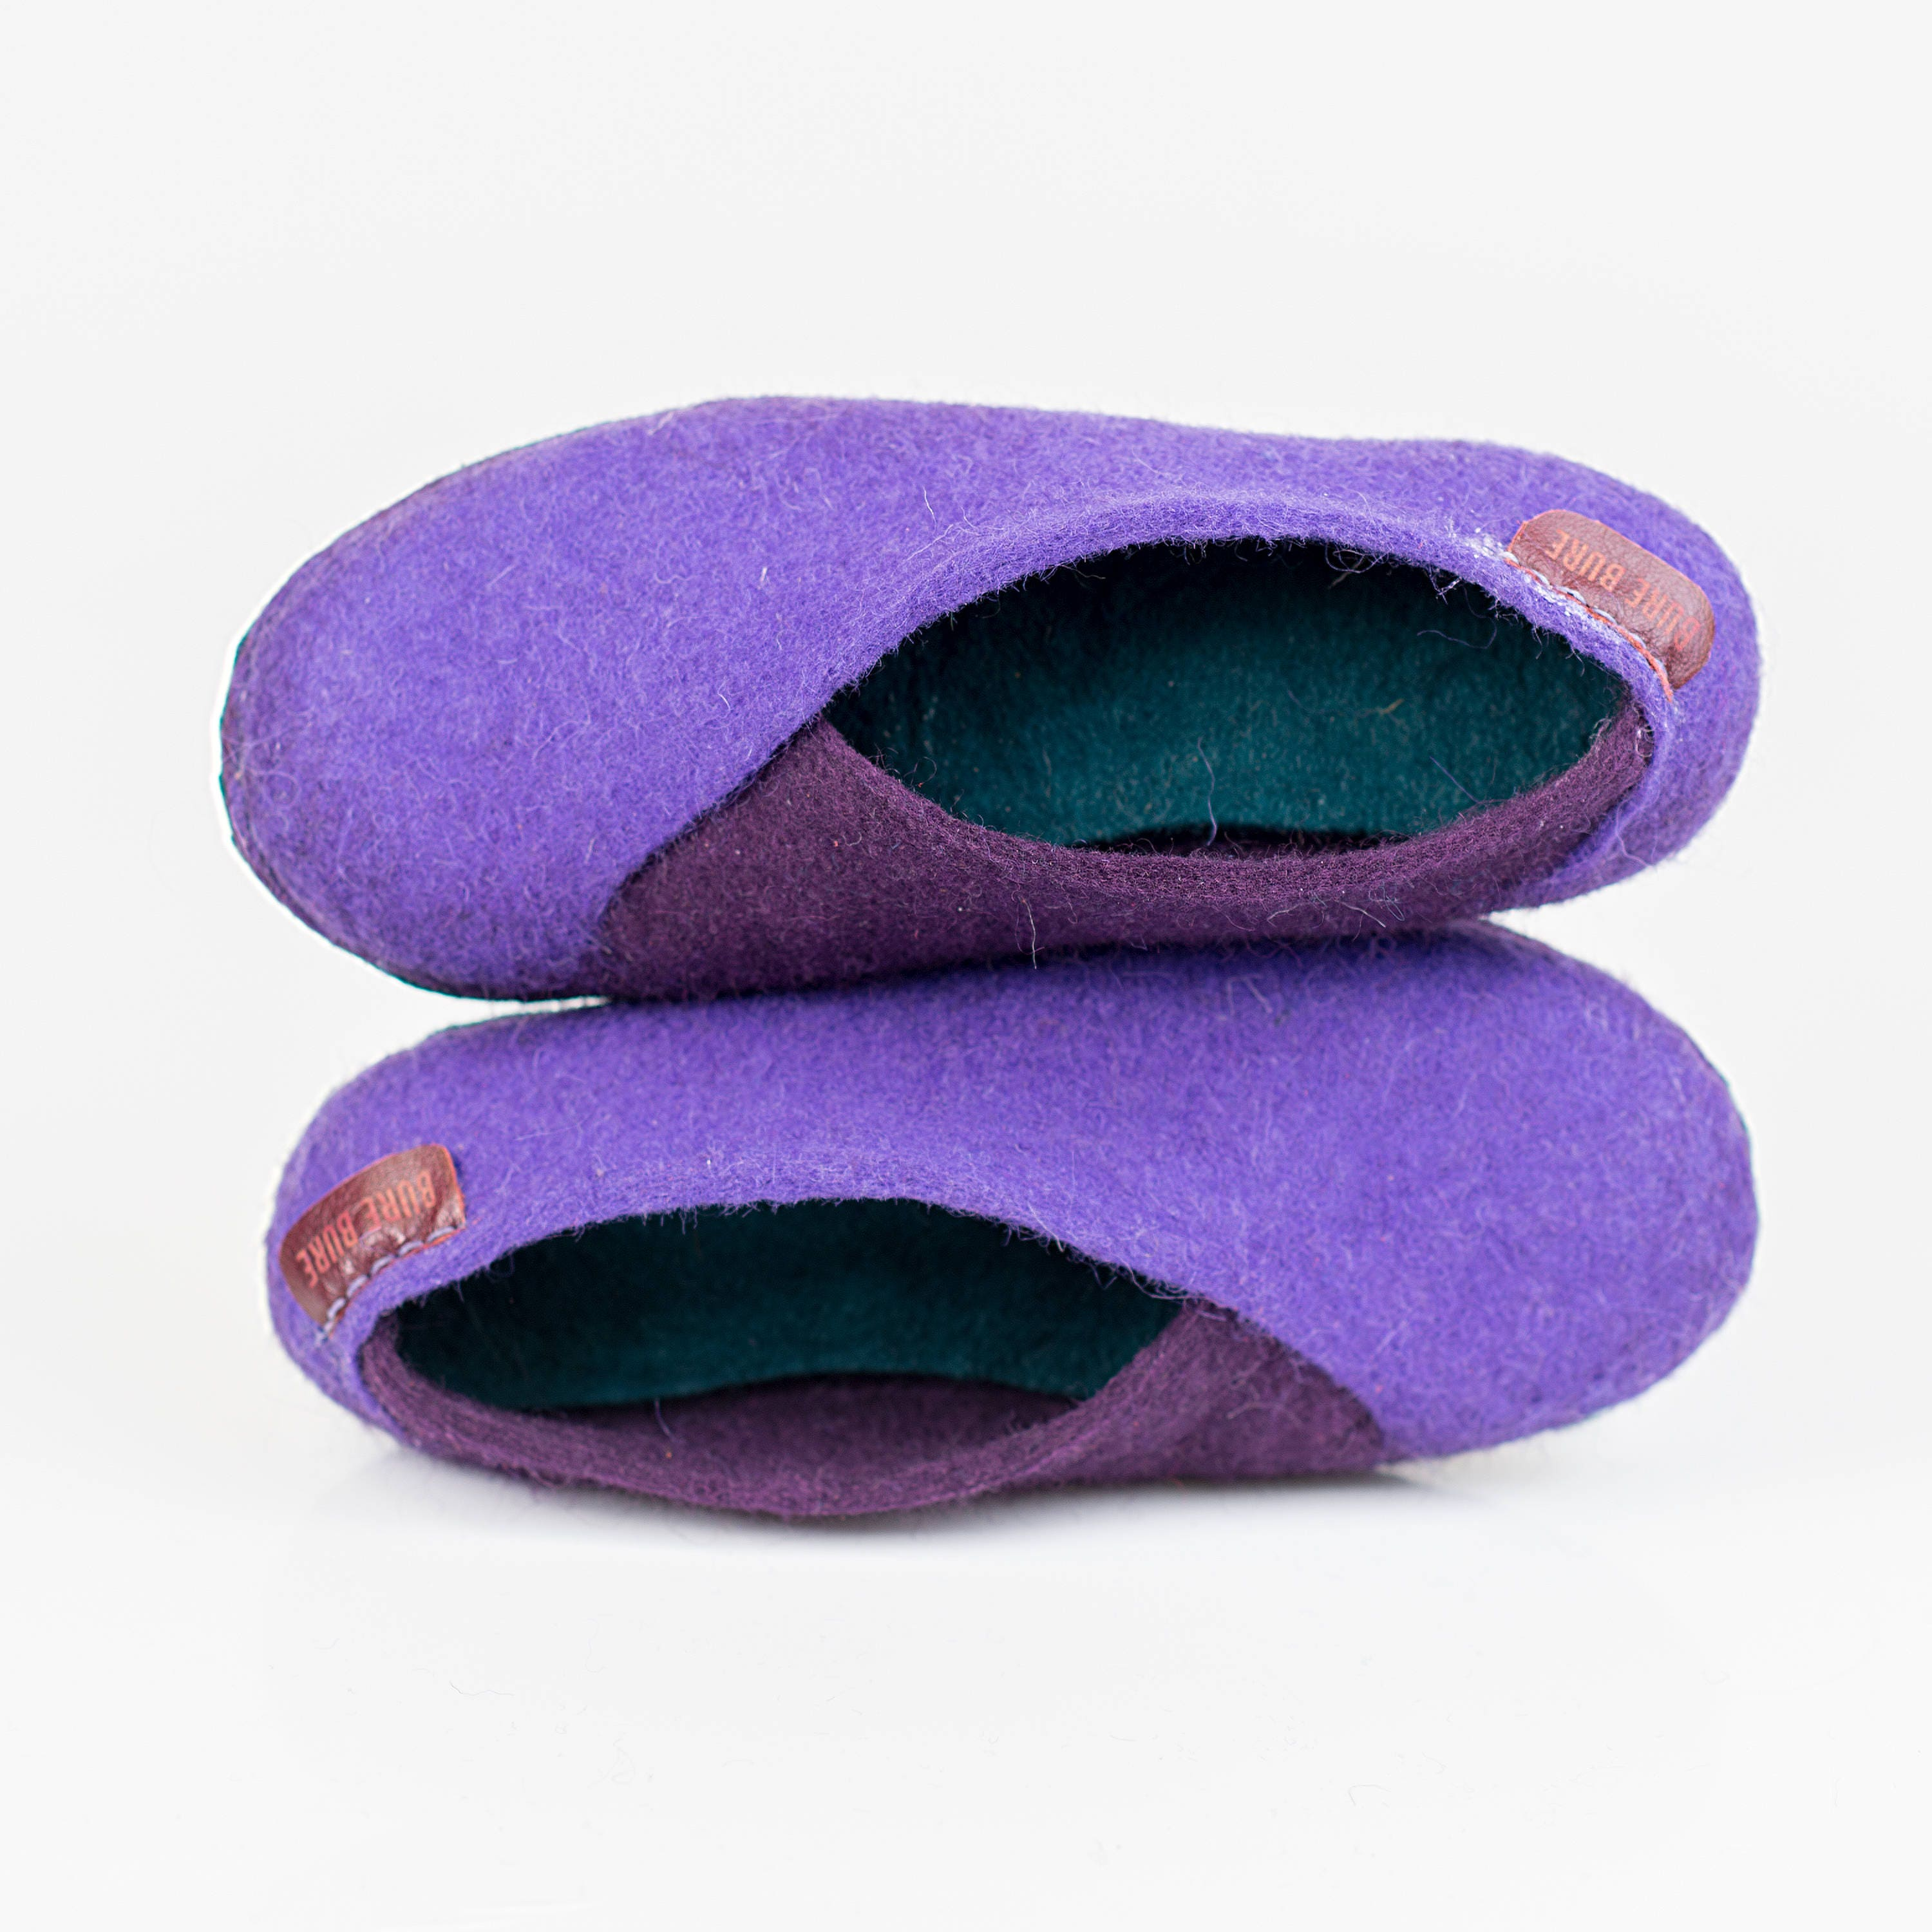 Eco Friendly Slippers: Ultra Violet Olive Envelope Slippers Felted Wool Slippers